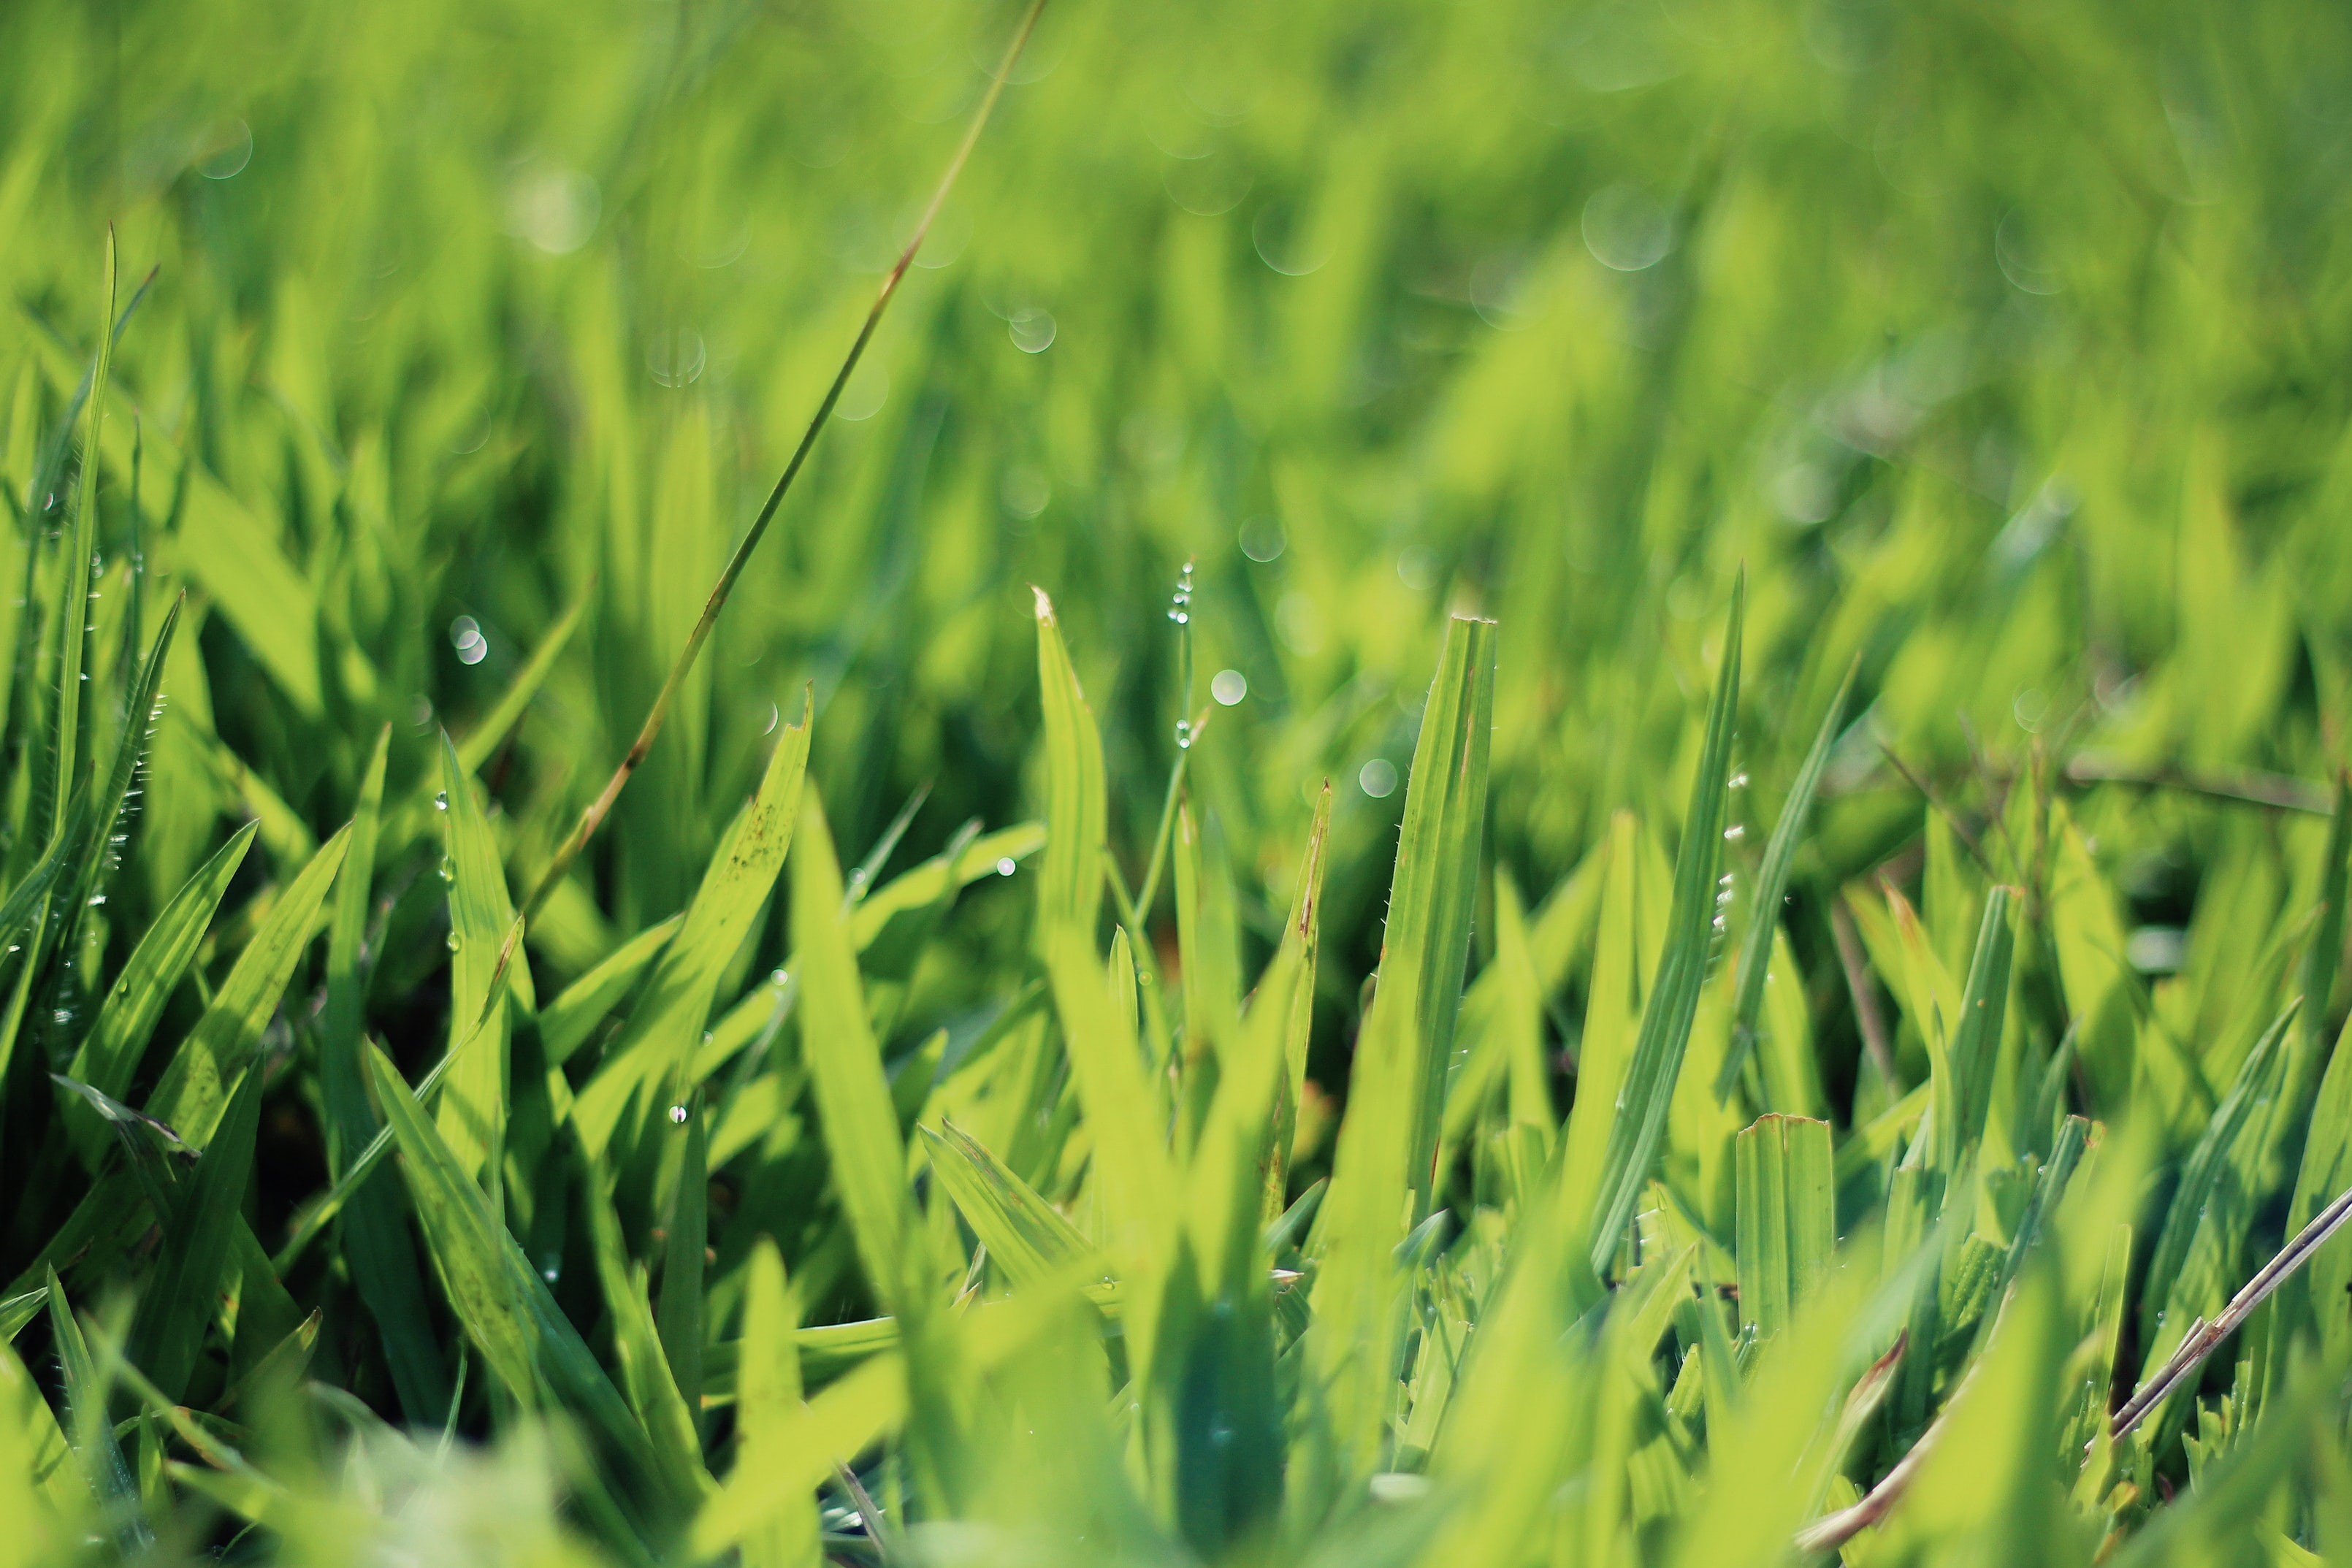 closeup photography of green grasses with water droplets